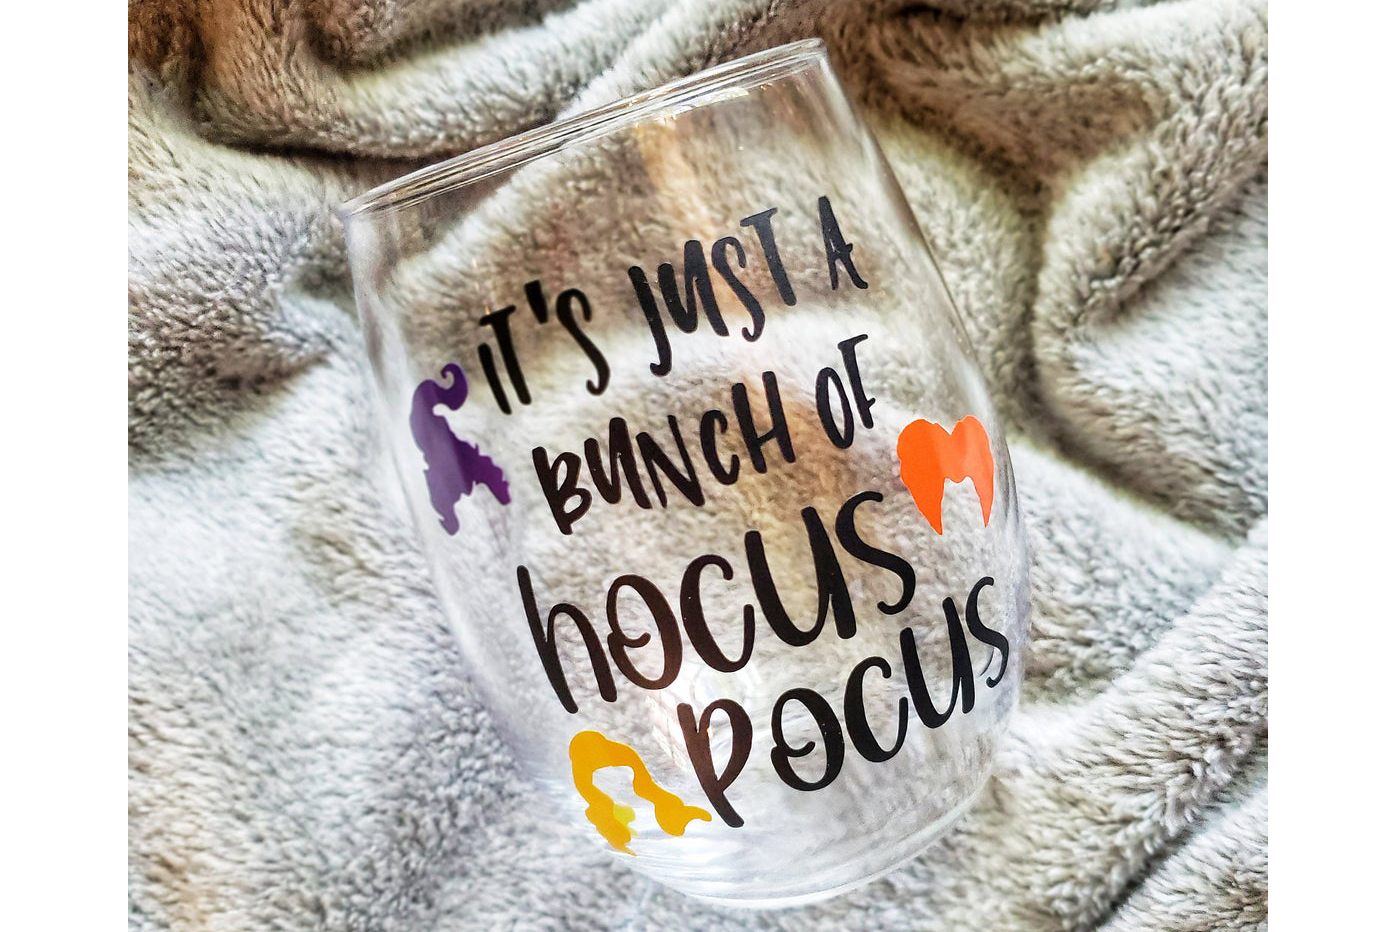 wine glass reads It's just a bunch of hocus pocus